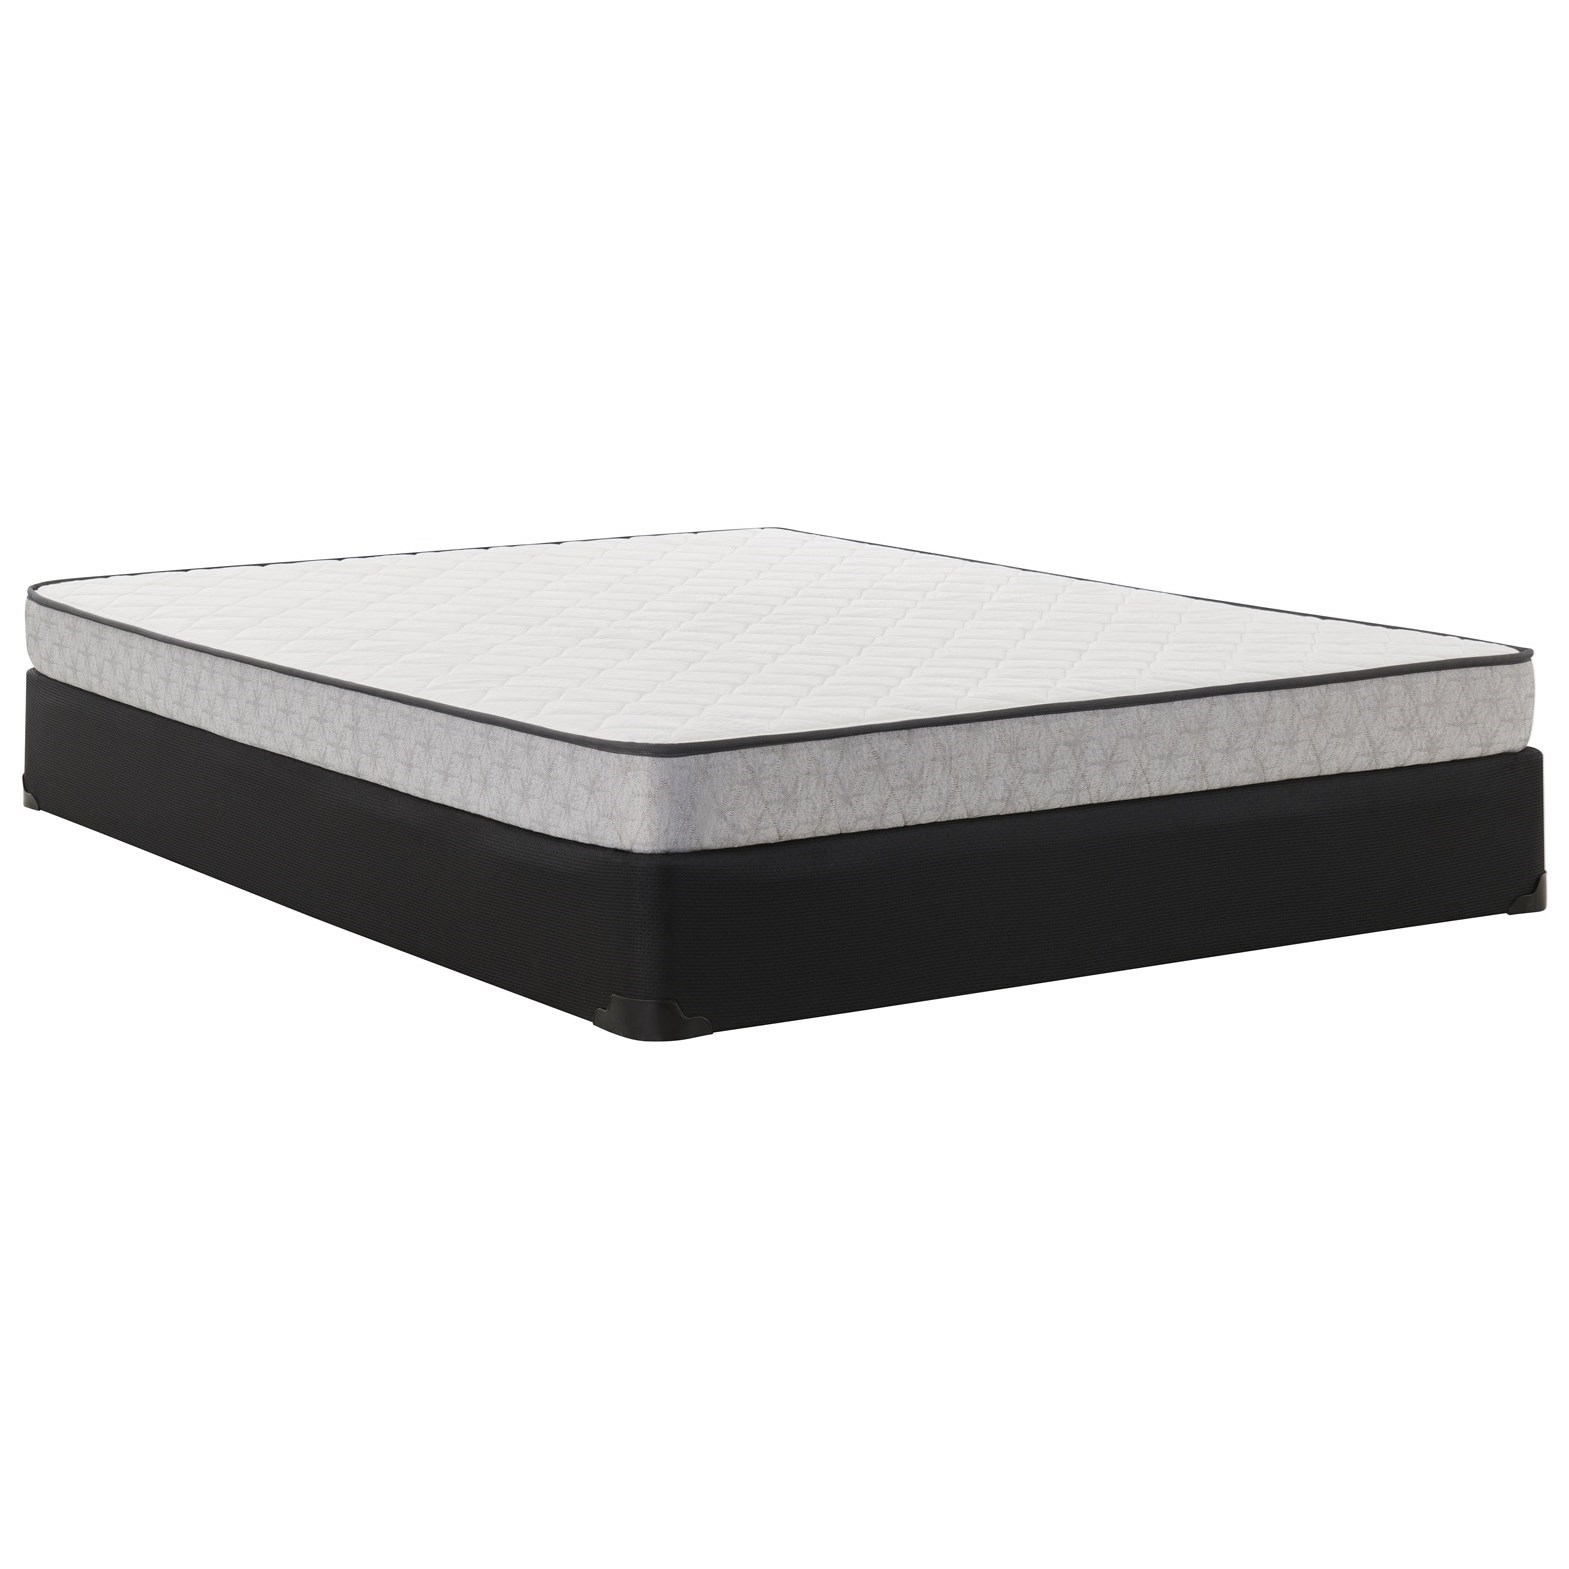 """Canonbury Firm TT Twin 5 1/2"""" Mattress Set by Sealy at Morris Home"""